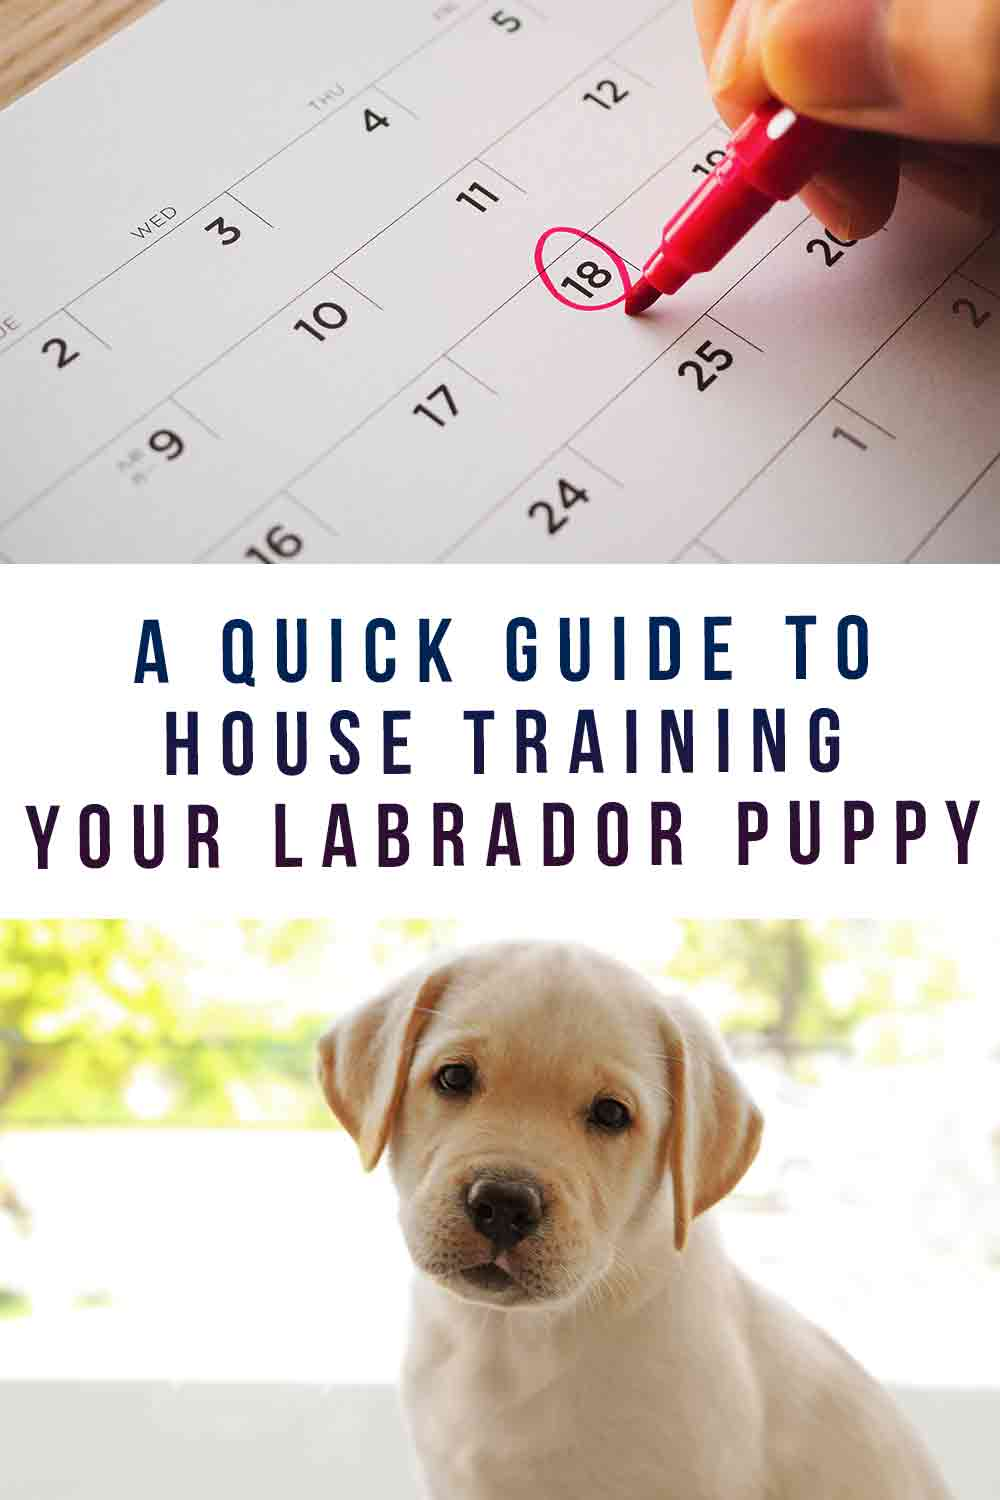 A Quick Guide to House Training Your Labrador Puppy